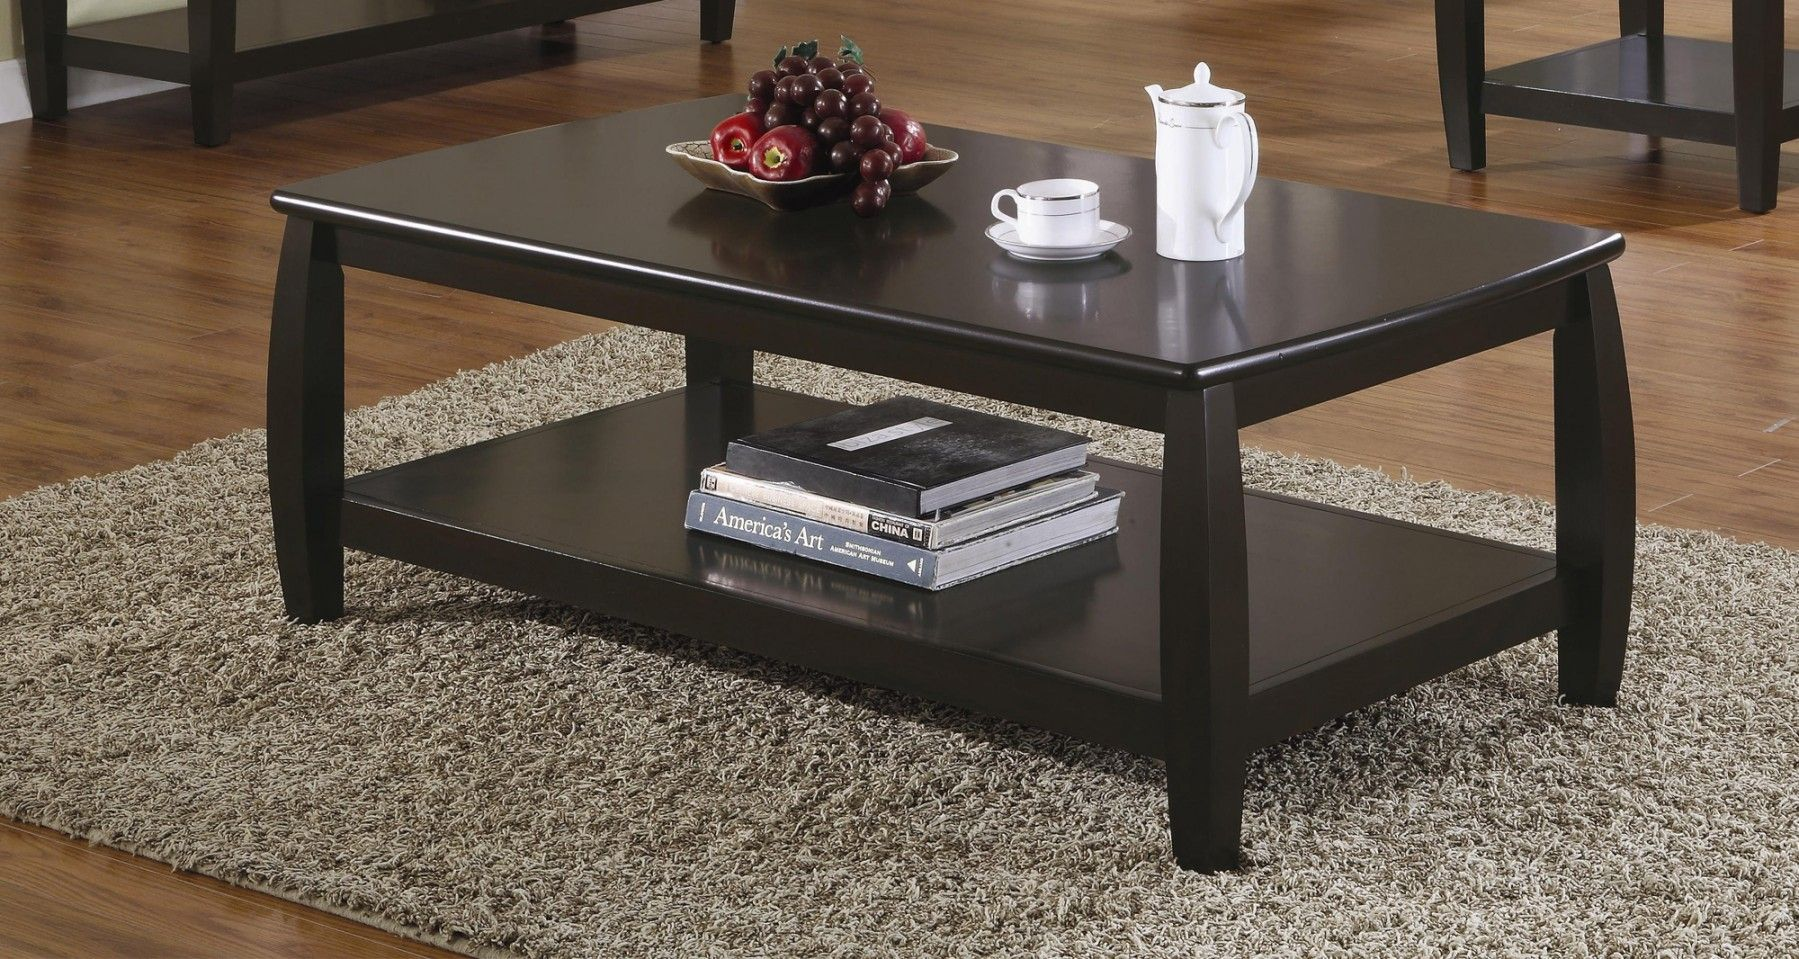 Coaster Wood Top Espresso Coffee Table With 1 Shelf Walmart Com Coffee Table Coffee Table Coasters Coffee Table With Shelf [ 959 x 1799 Pixel ]